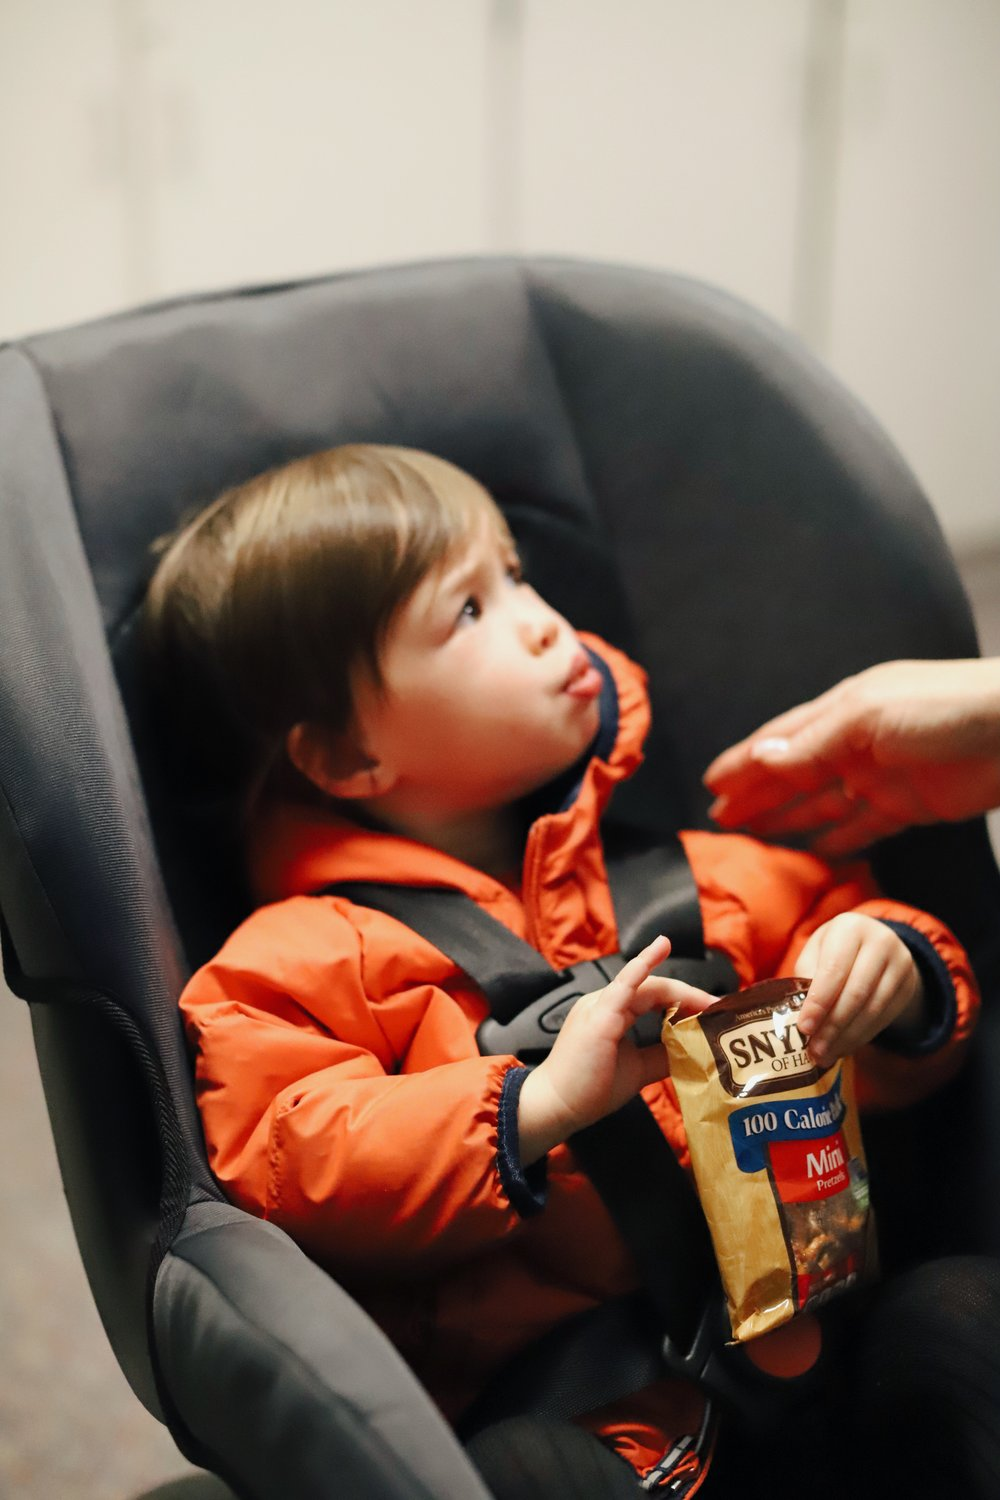 THE WRONG WAY: Do not wear puffy winter coats in a car seat.